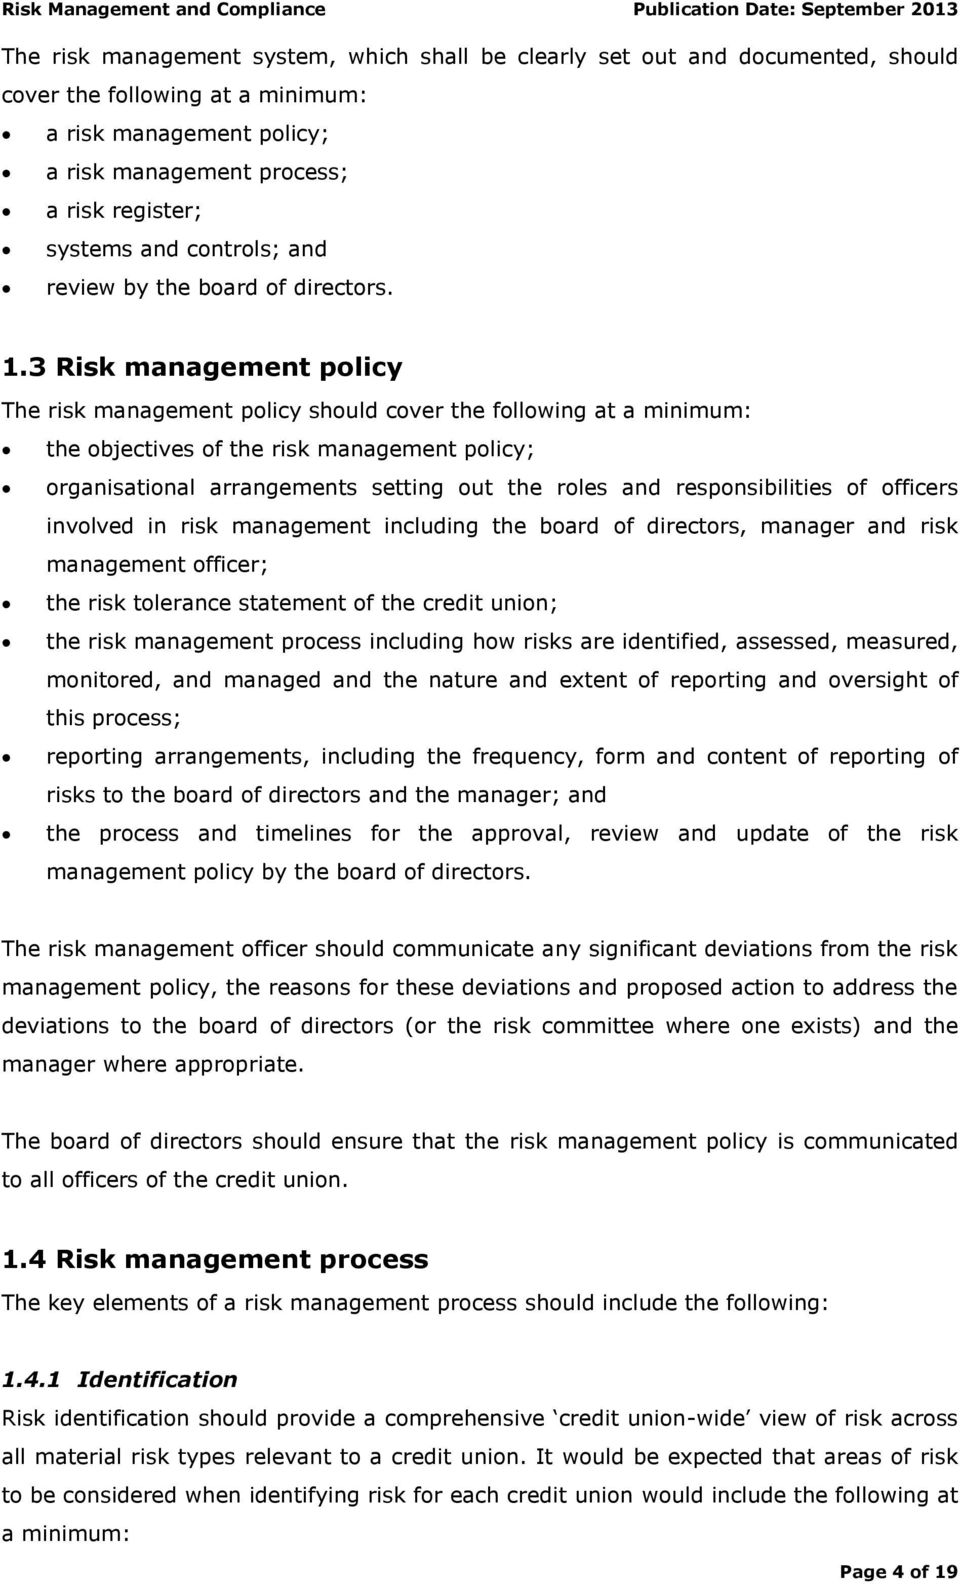 3 Risk management policy The risk management policy should cover the following at a minimum: the objectives of the risk management policy; organisational arrangements setting out the roles and